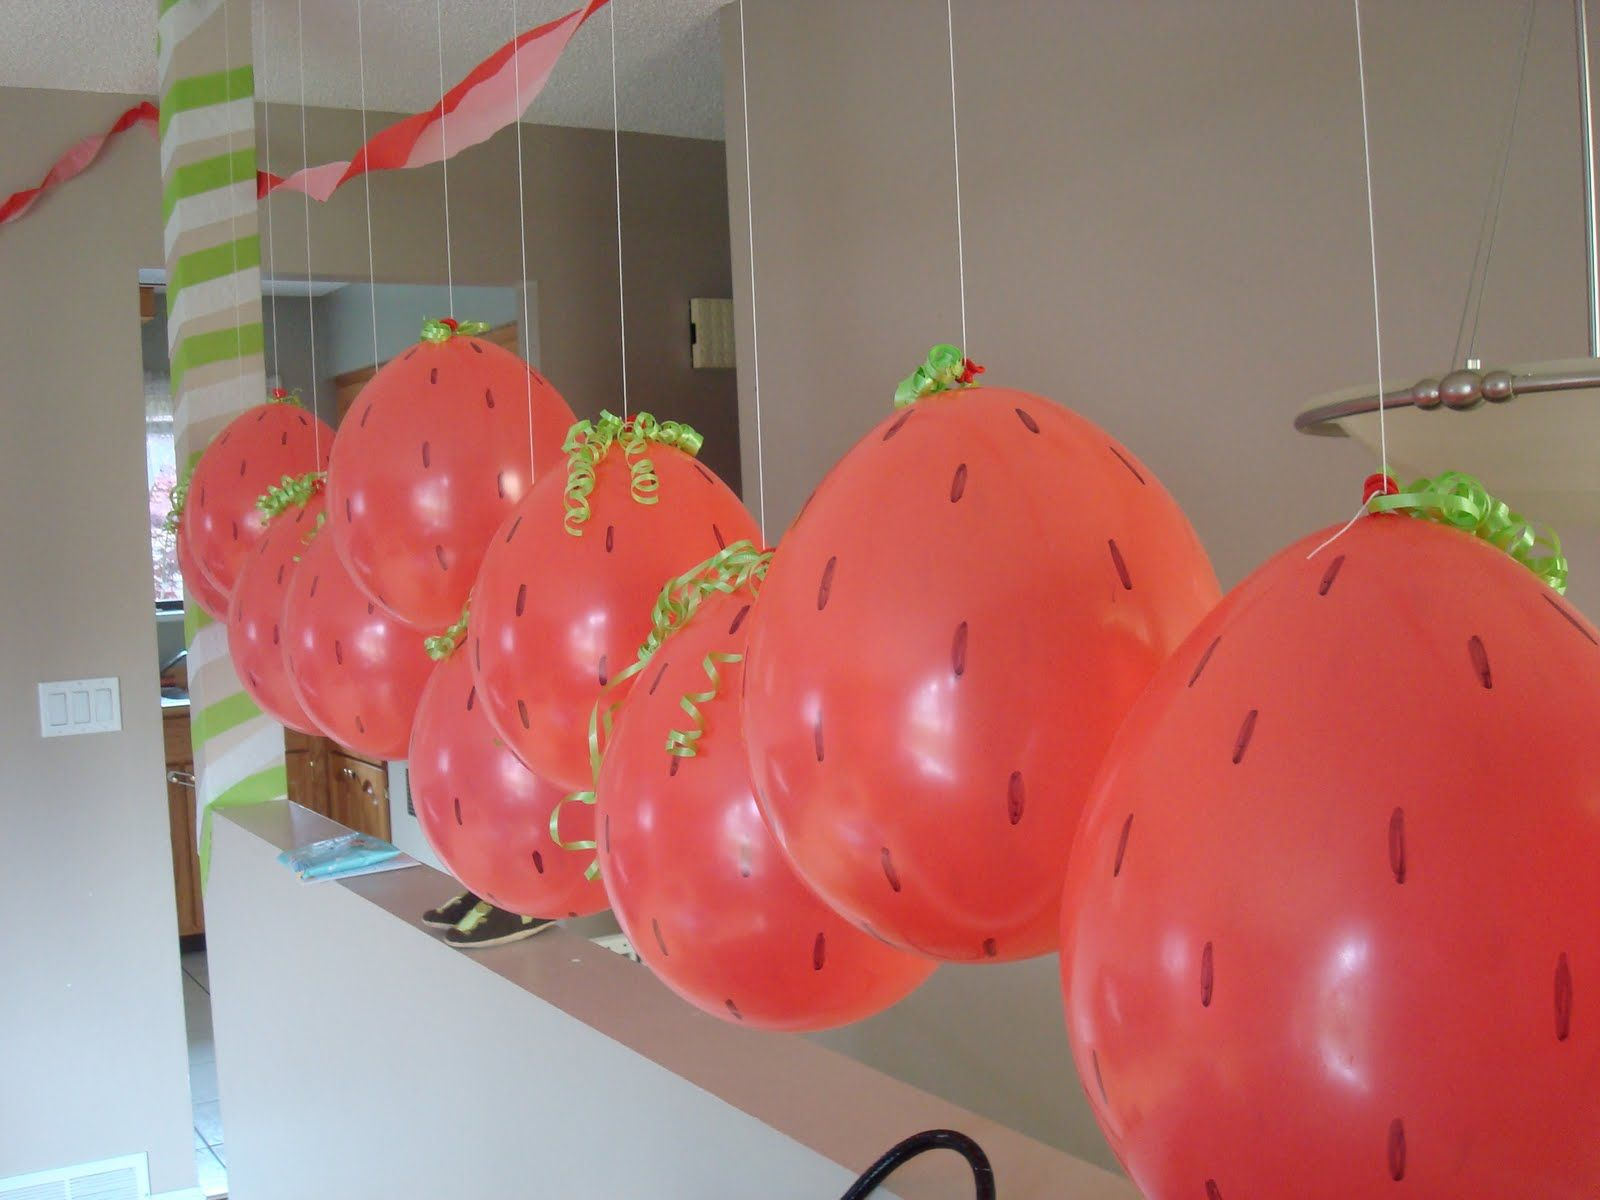 Strawberry Balloon Idea. Regular Red Balloons And